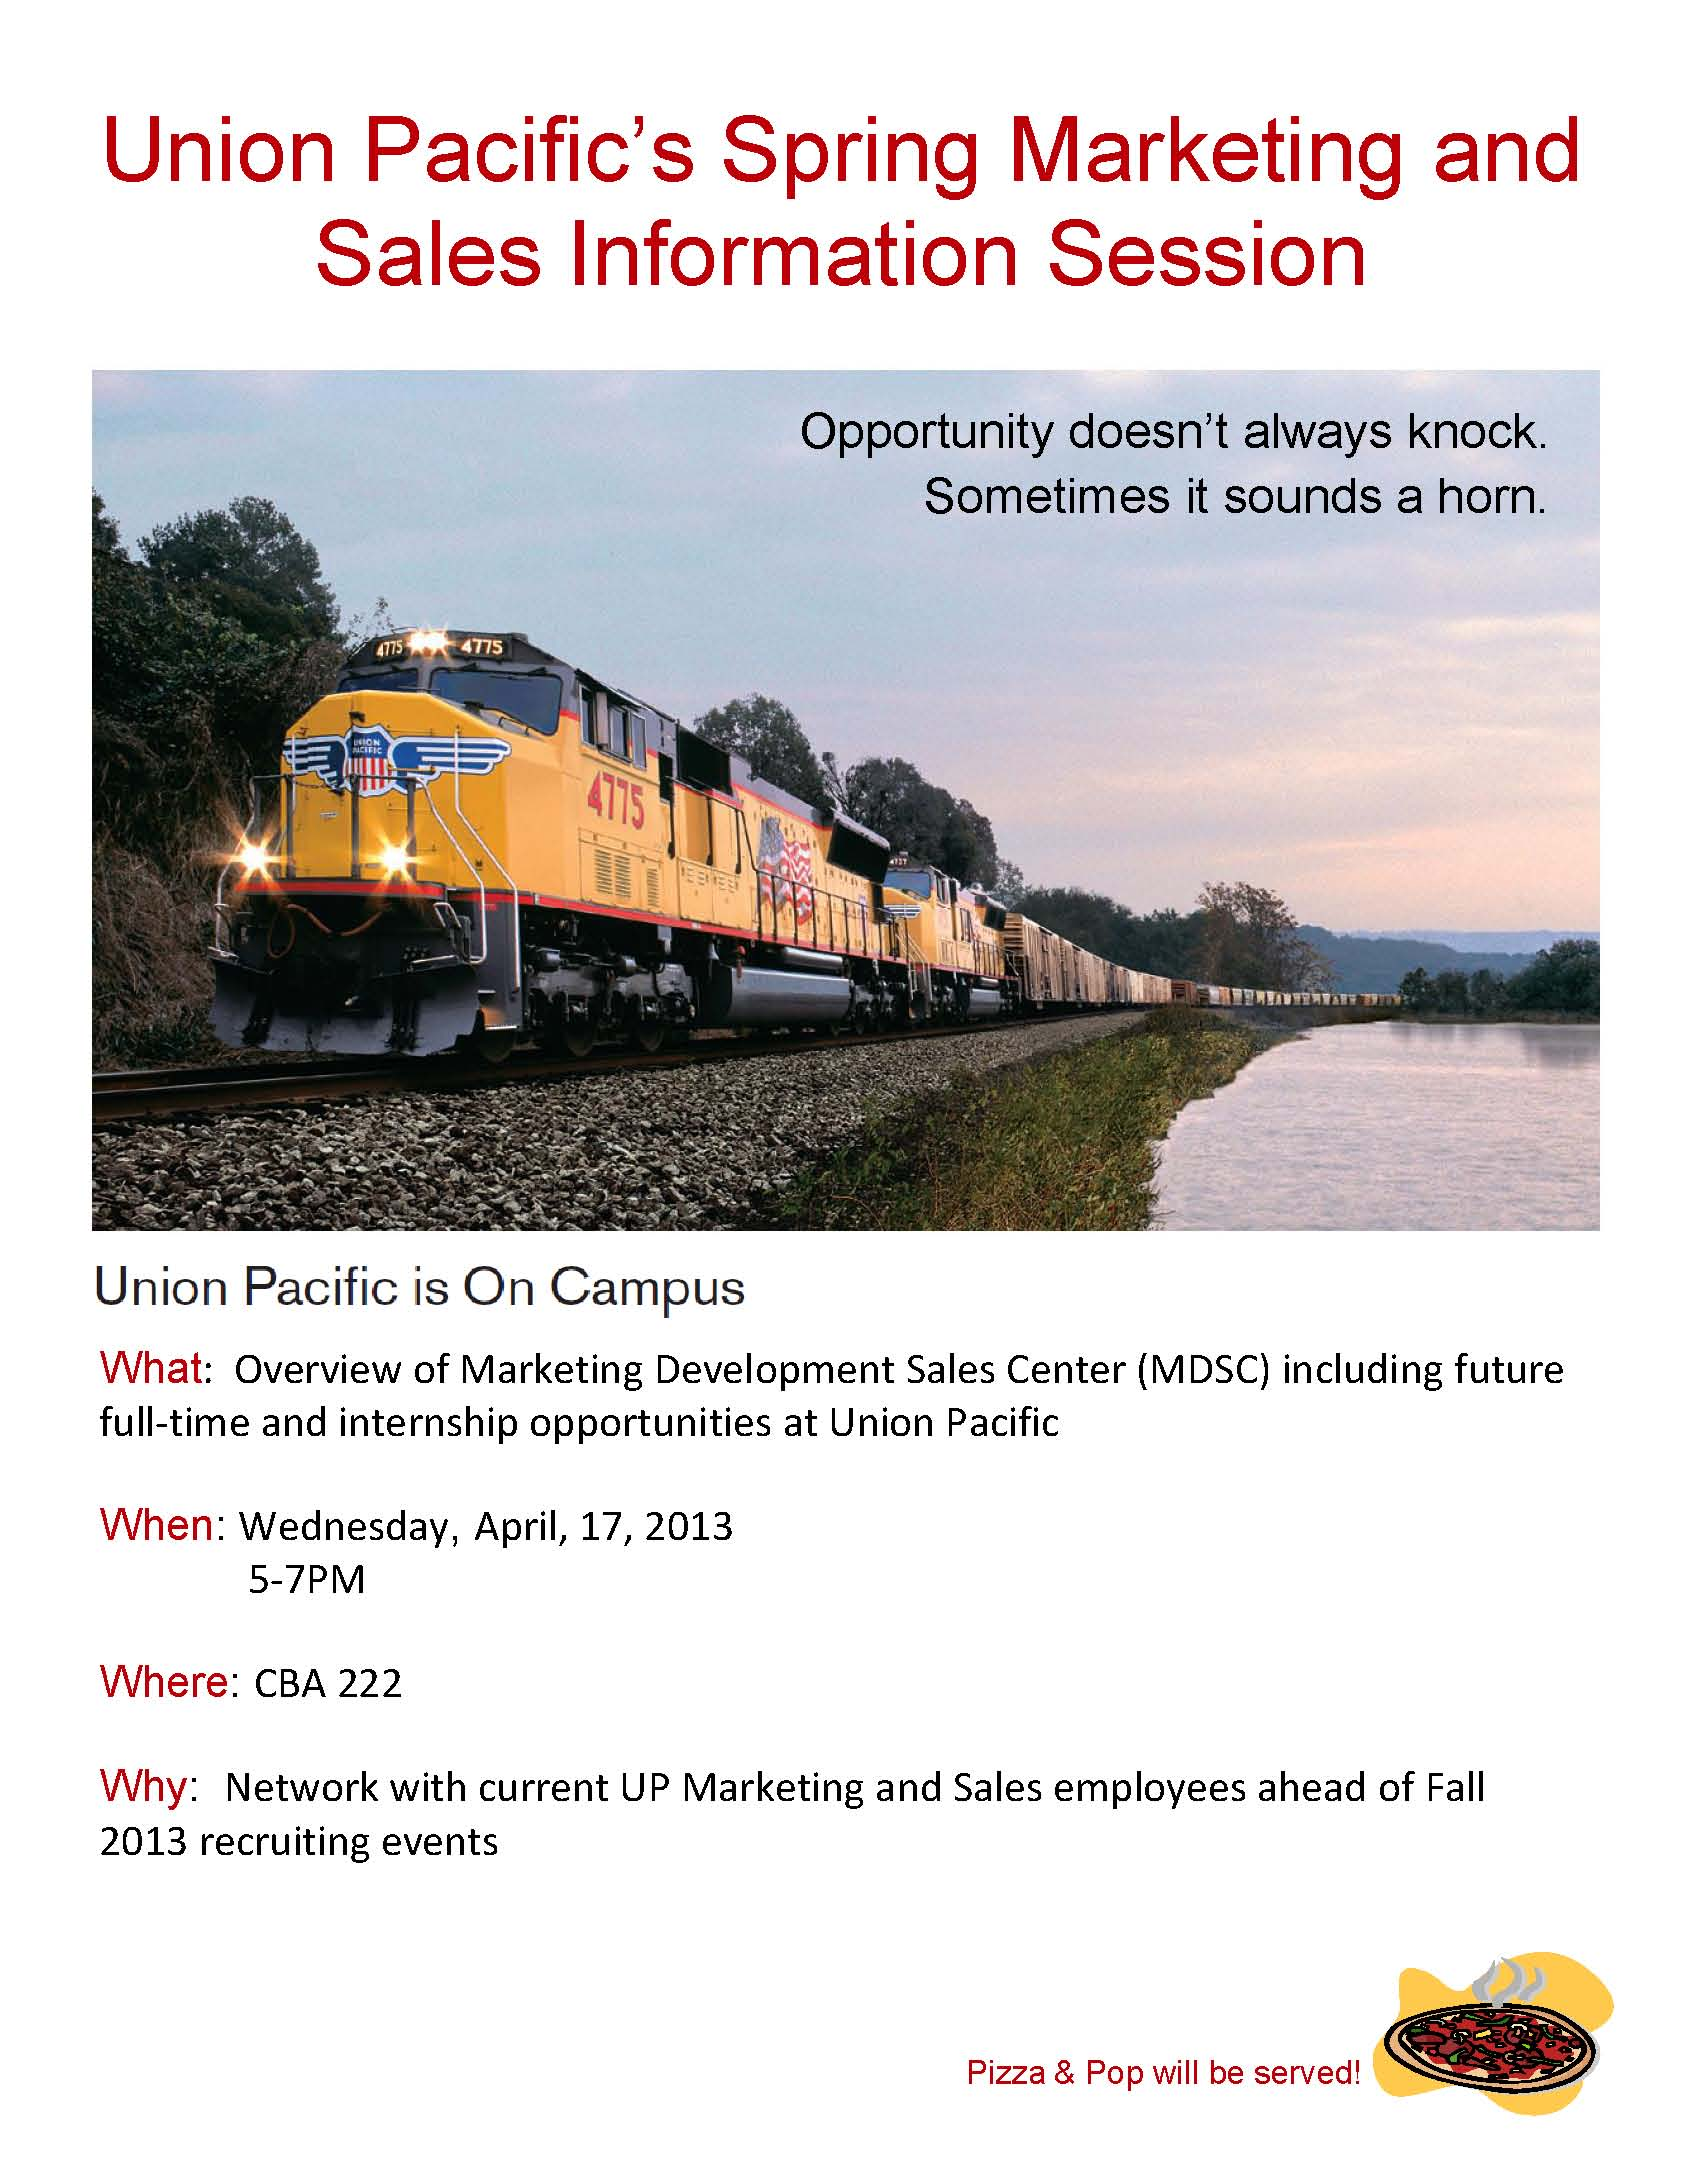 Learn more about marketing/sales opportunities at Union Pacific on April 17, 2013.